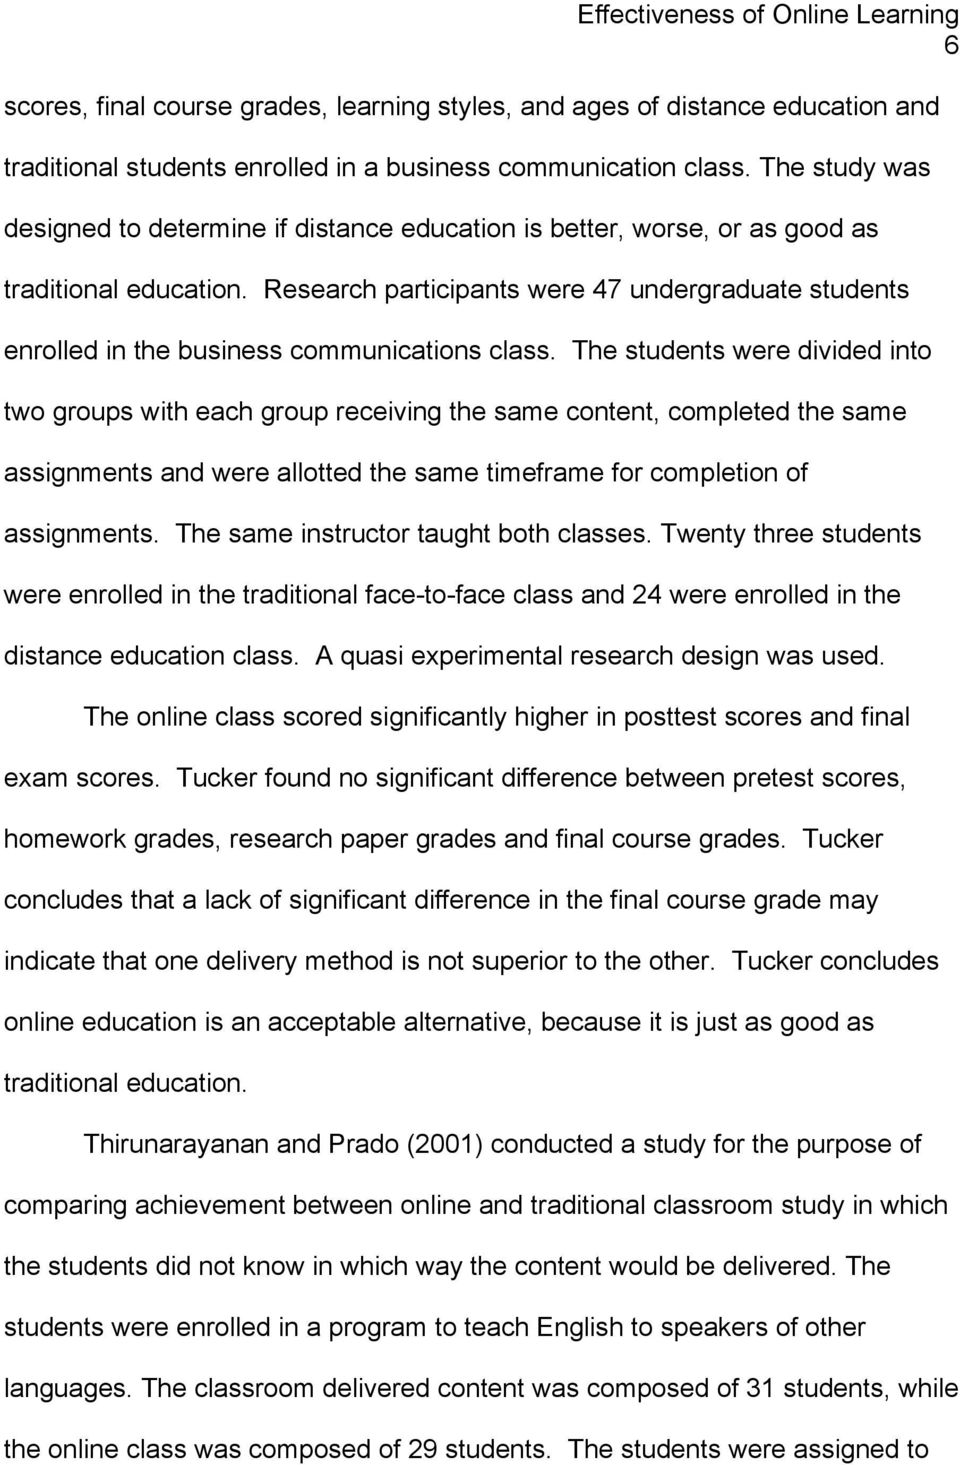 010 Research Paper Page 6 Effectiveness Of Online Amazing Education Full